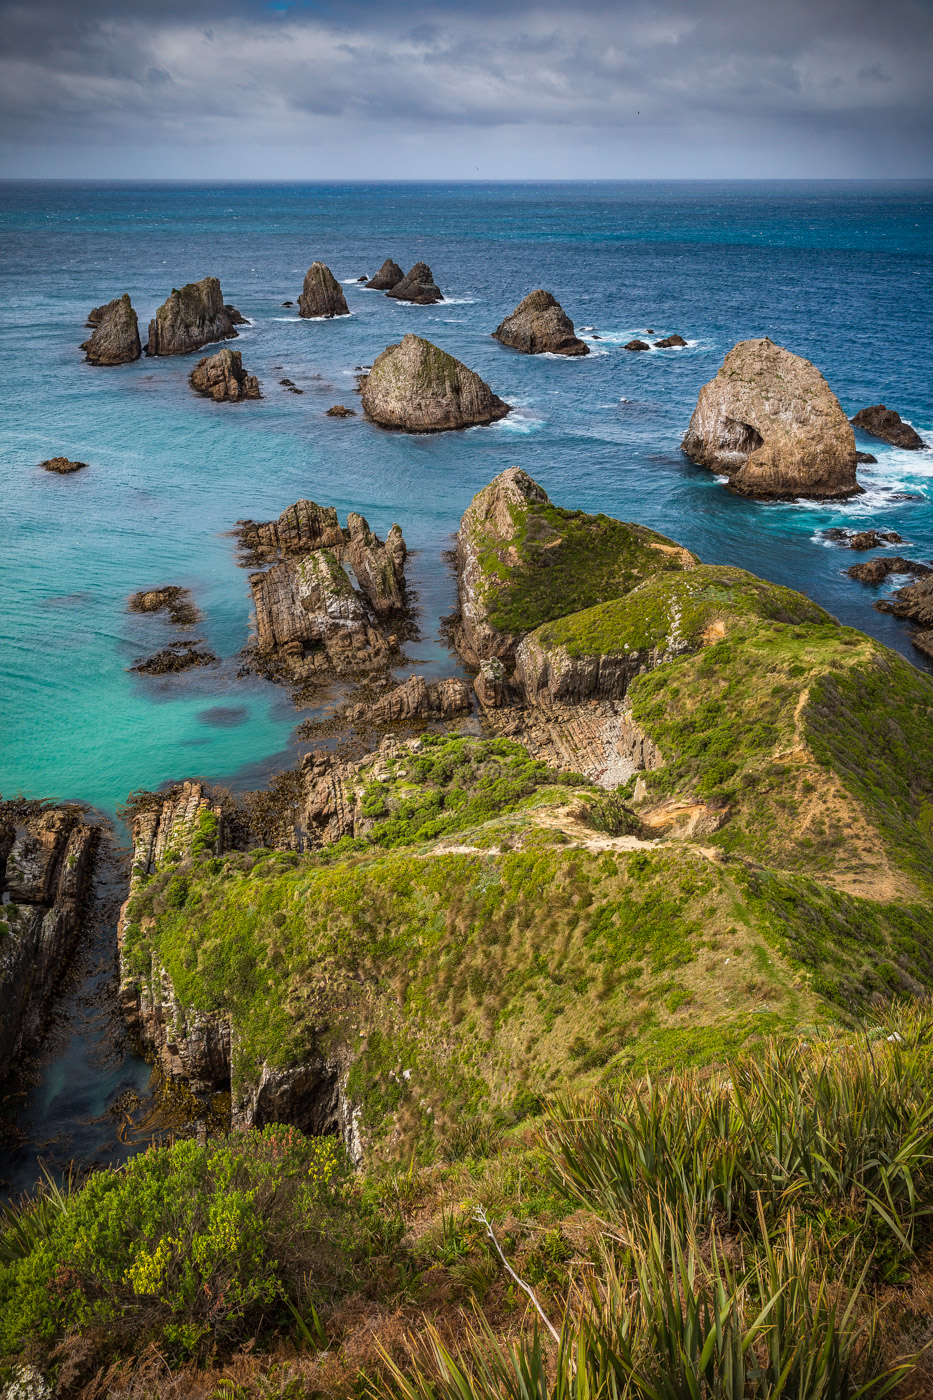 Ocean view and jagged rocks from the Nugget Point Lighthouse trail, South Island, New Zealand